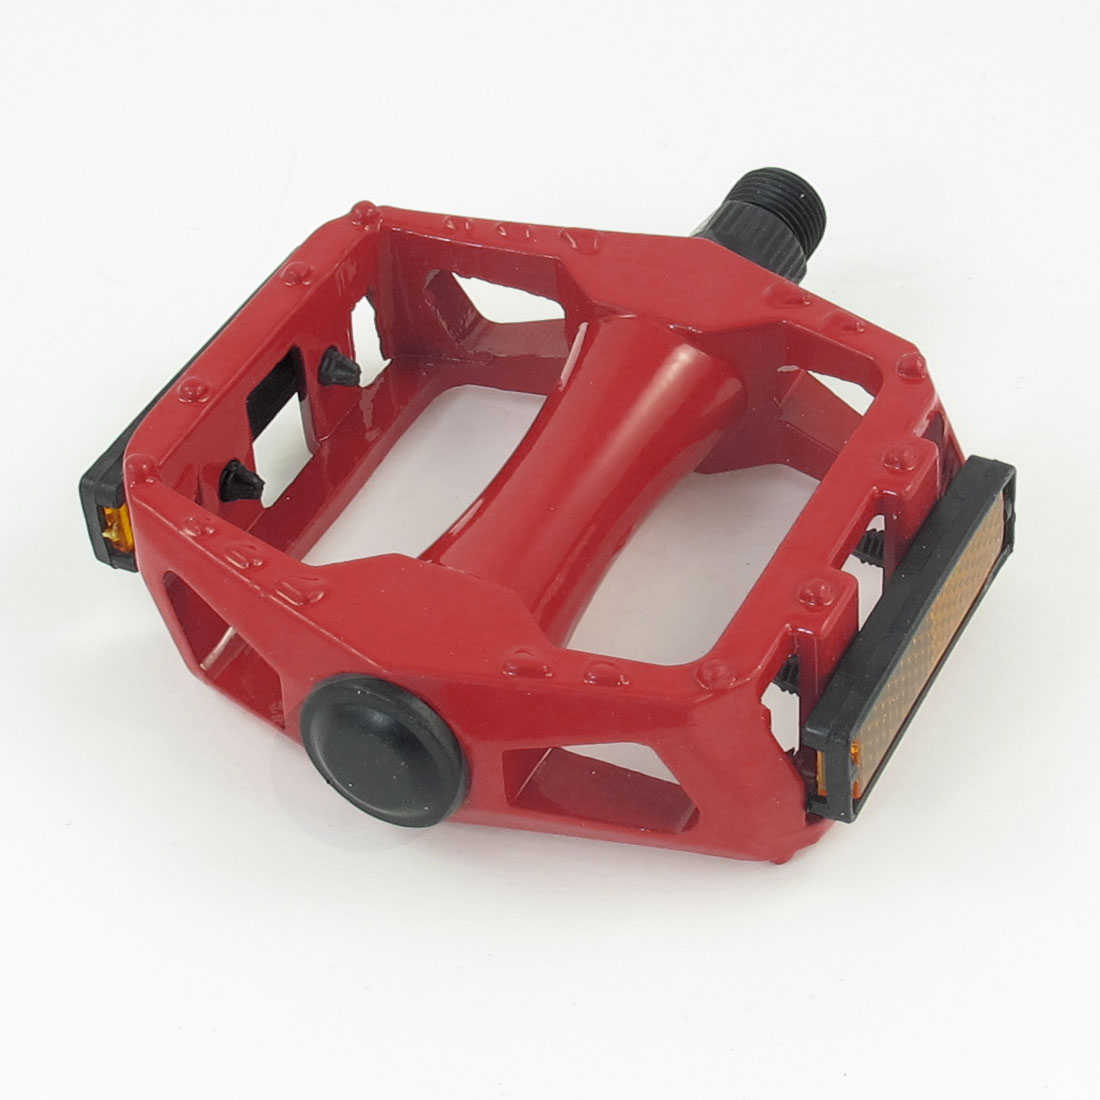 Mountain Road Bike Bicycie Red Metal Platform Pedal Part